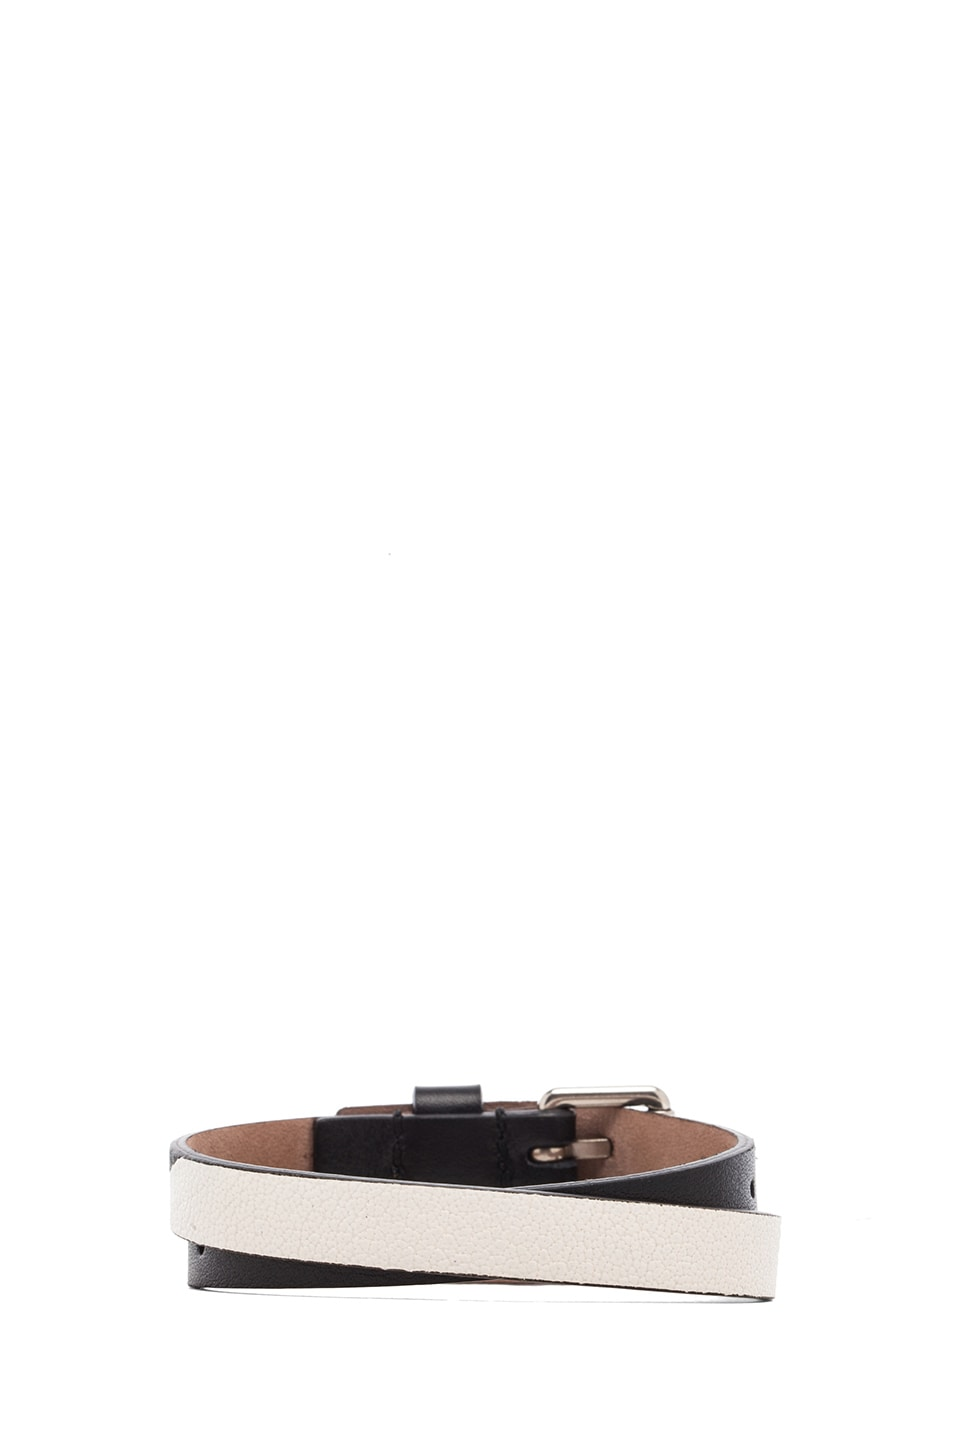 Image 3 of Alexander McQueen Double Wrap Leather Bracelet in Black & White